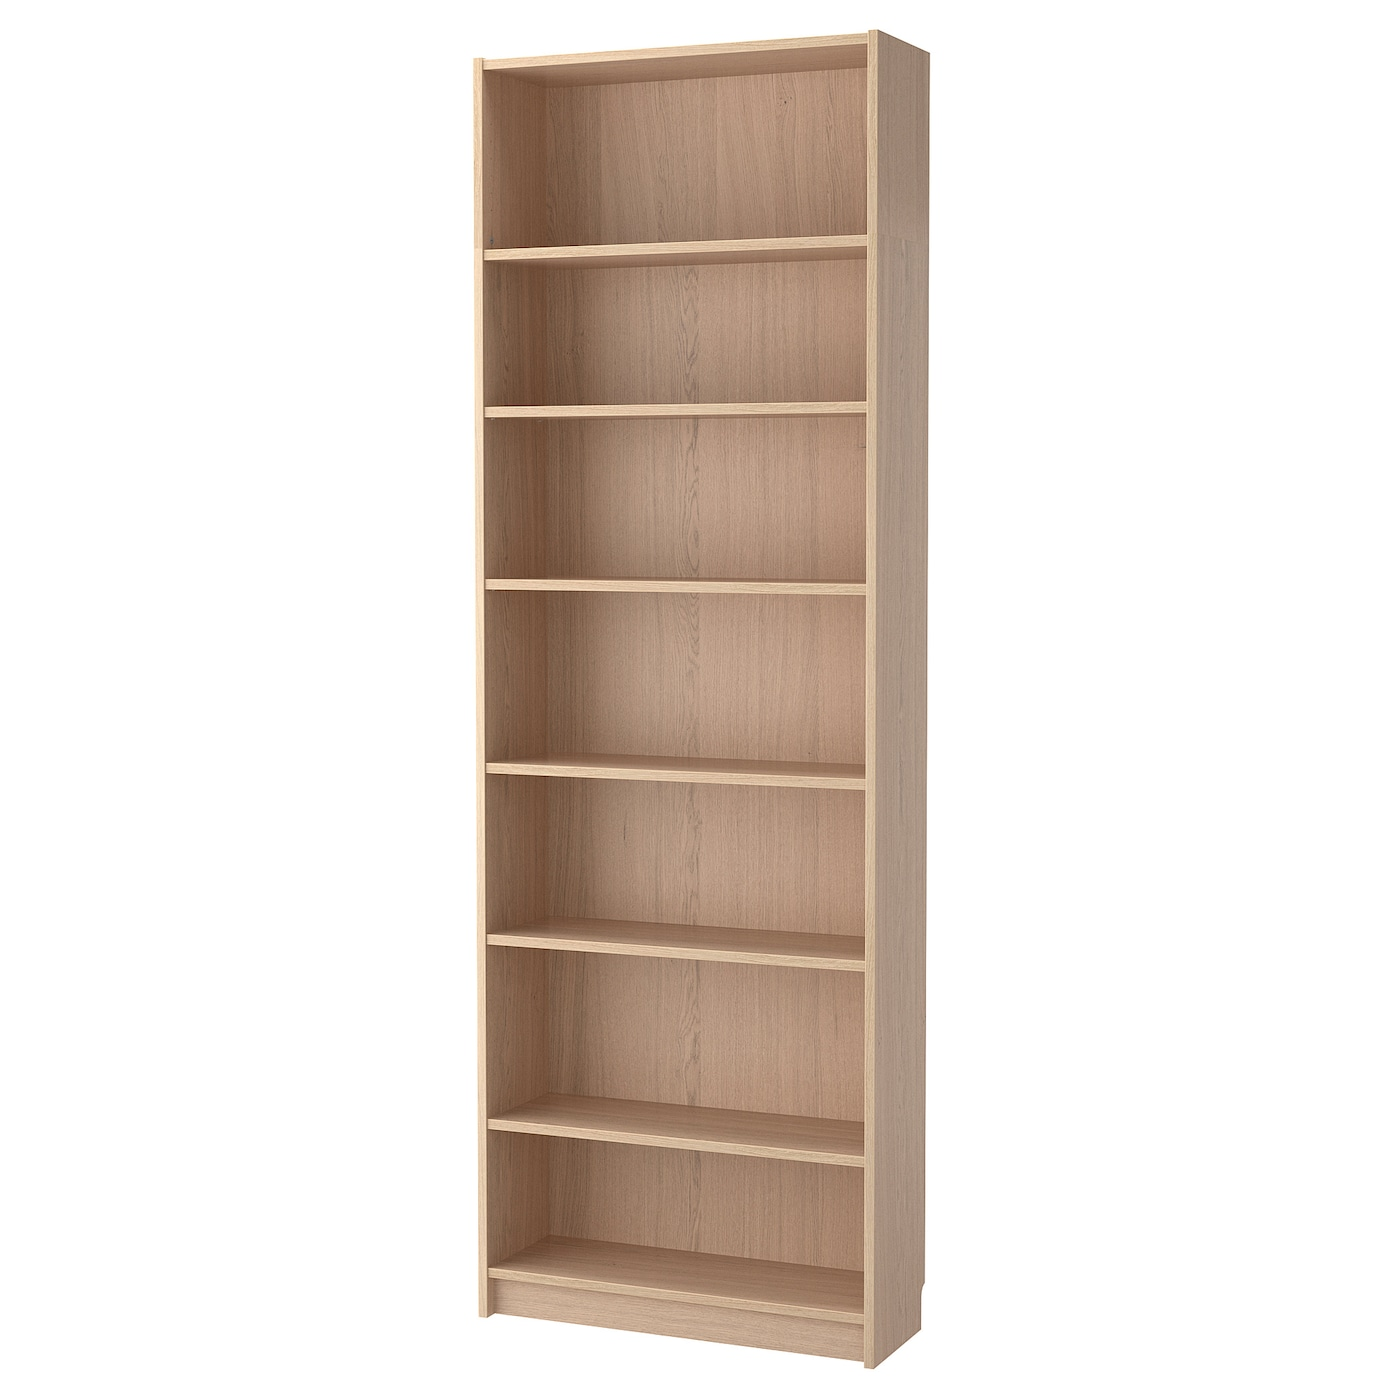 IKEA BILLY bookcase with height extension unit Surface made from natural wood veneer.